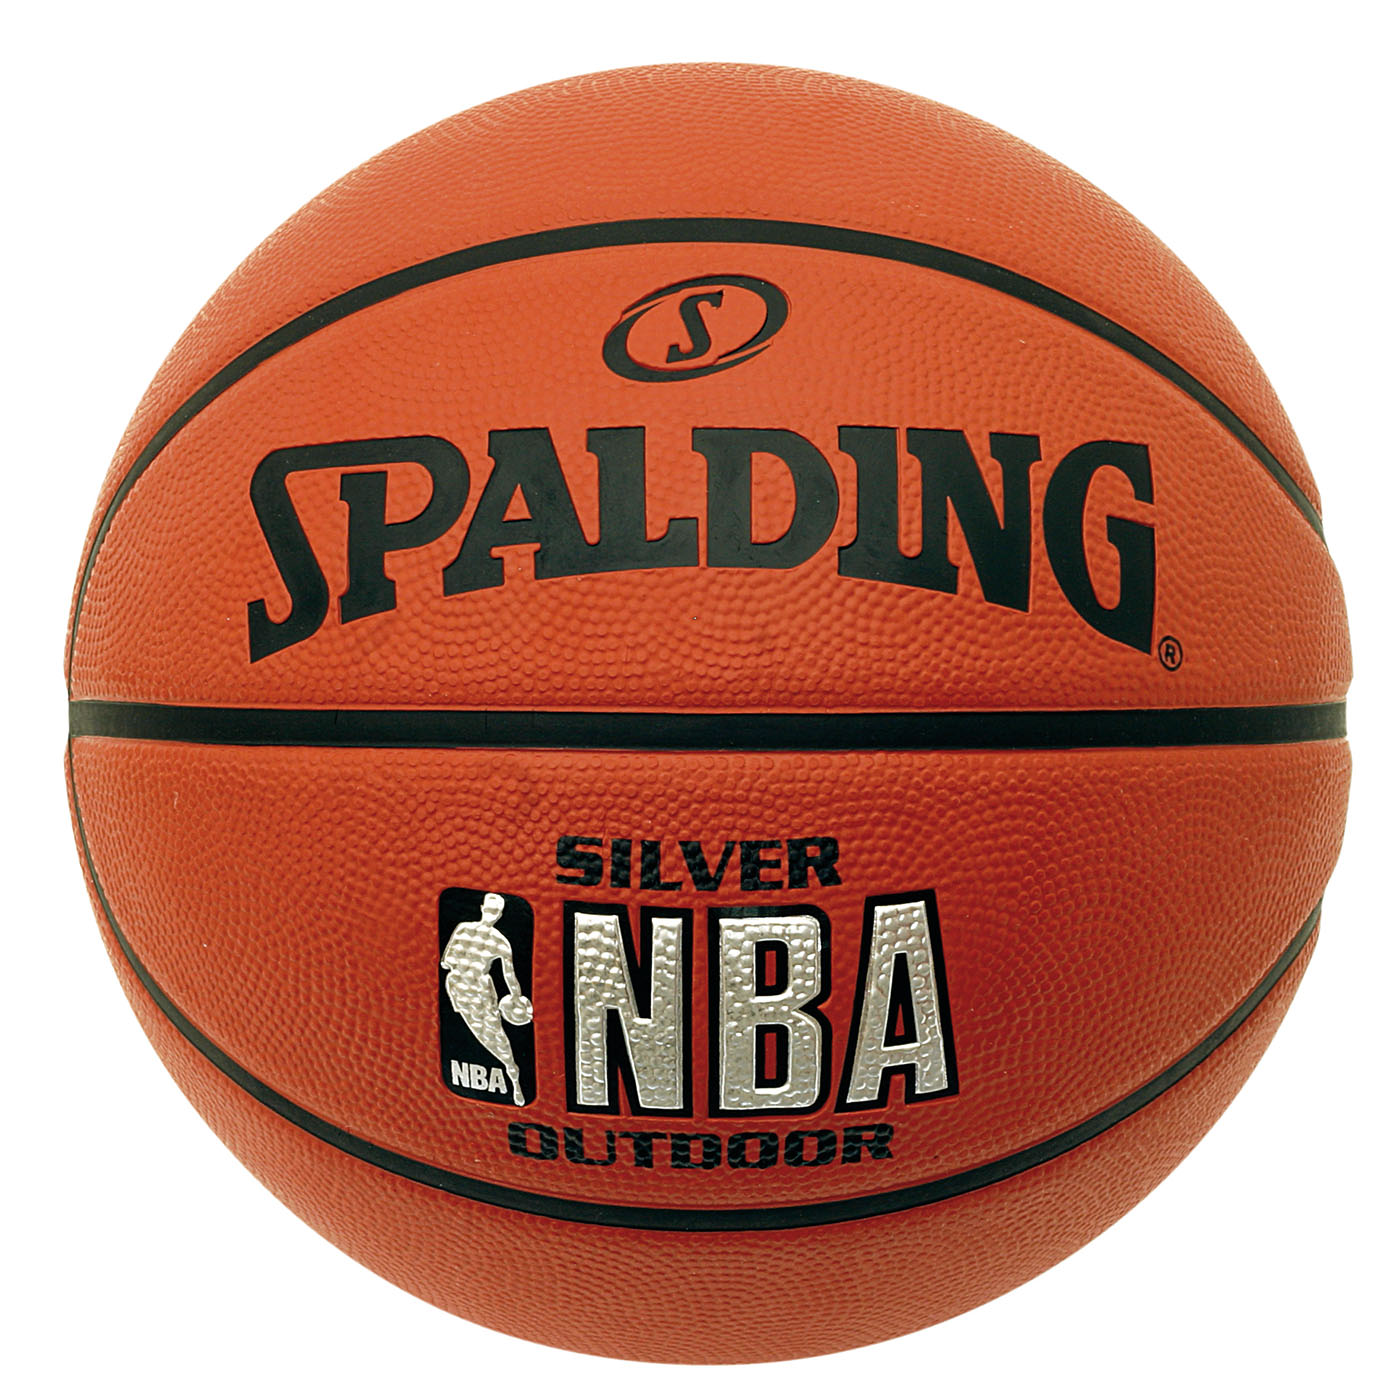 Looking to invest a good spalding b-Ball for outside ...